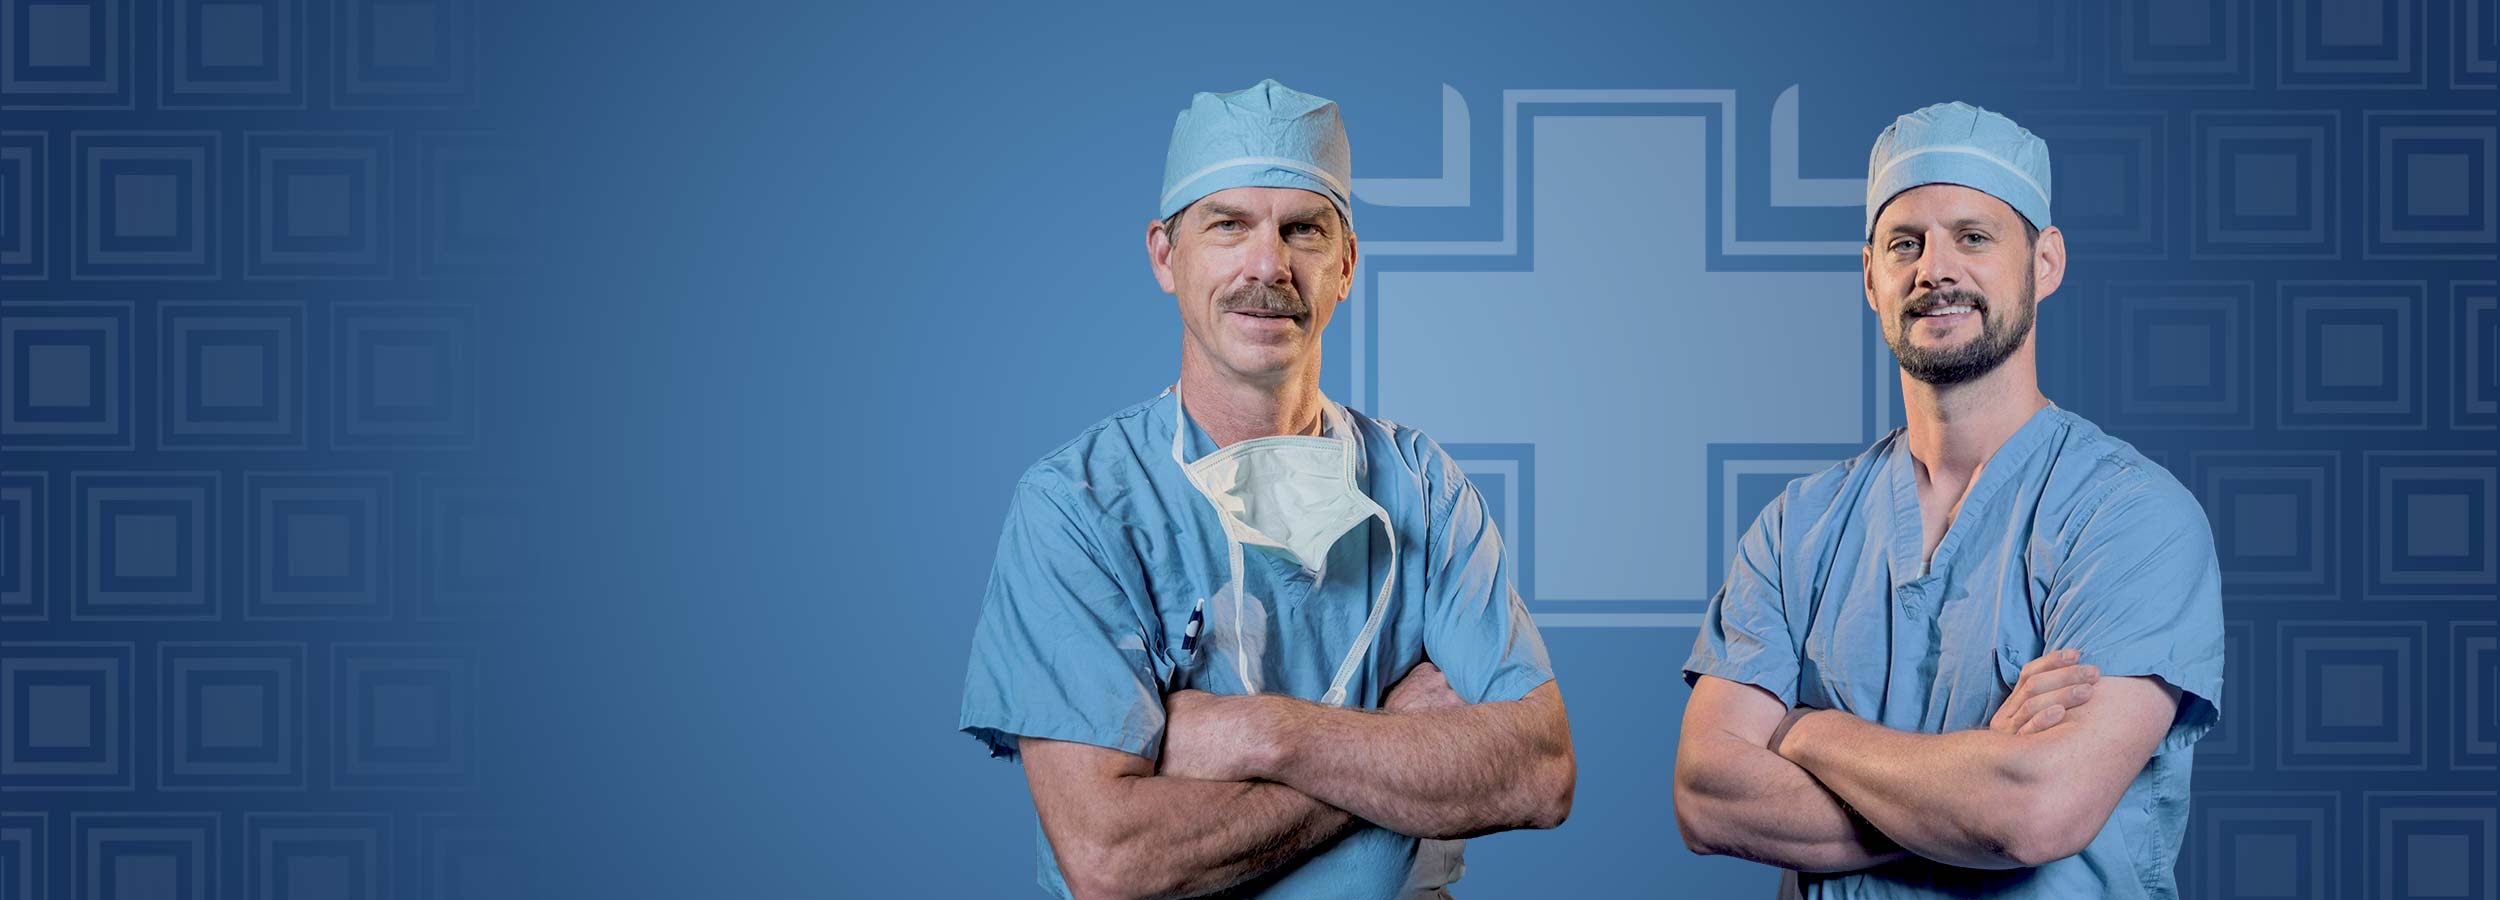 Gritman General Surgeons, Dr. Anderson and Dr. Newell